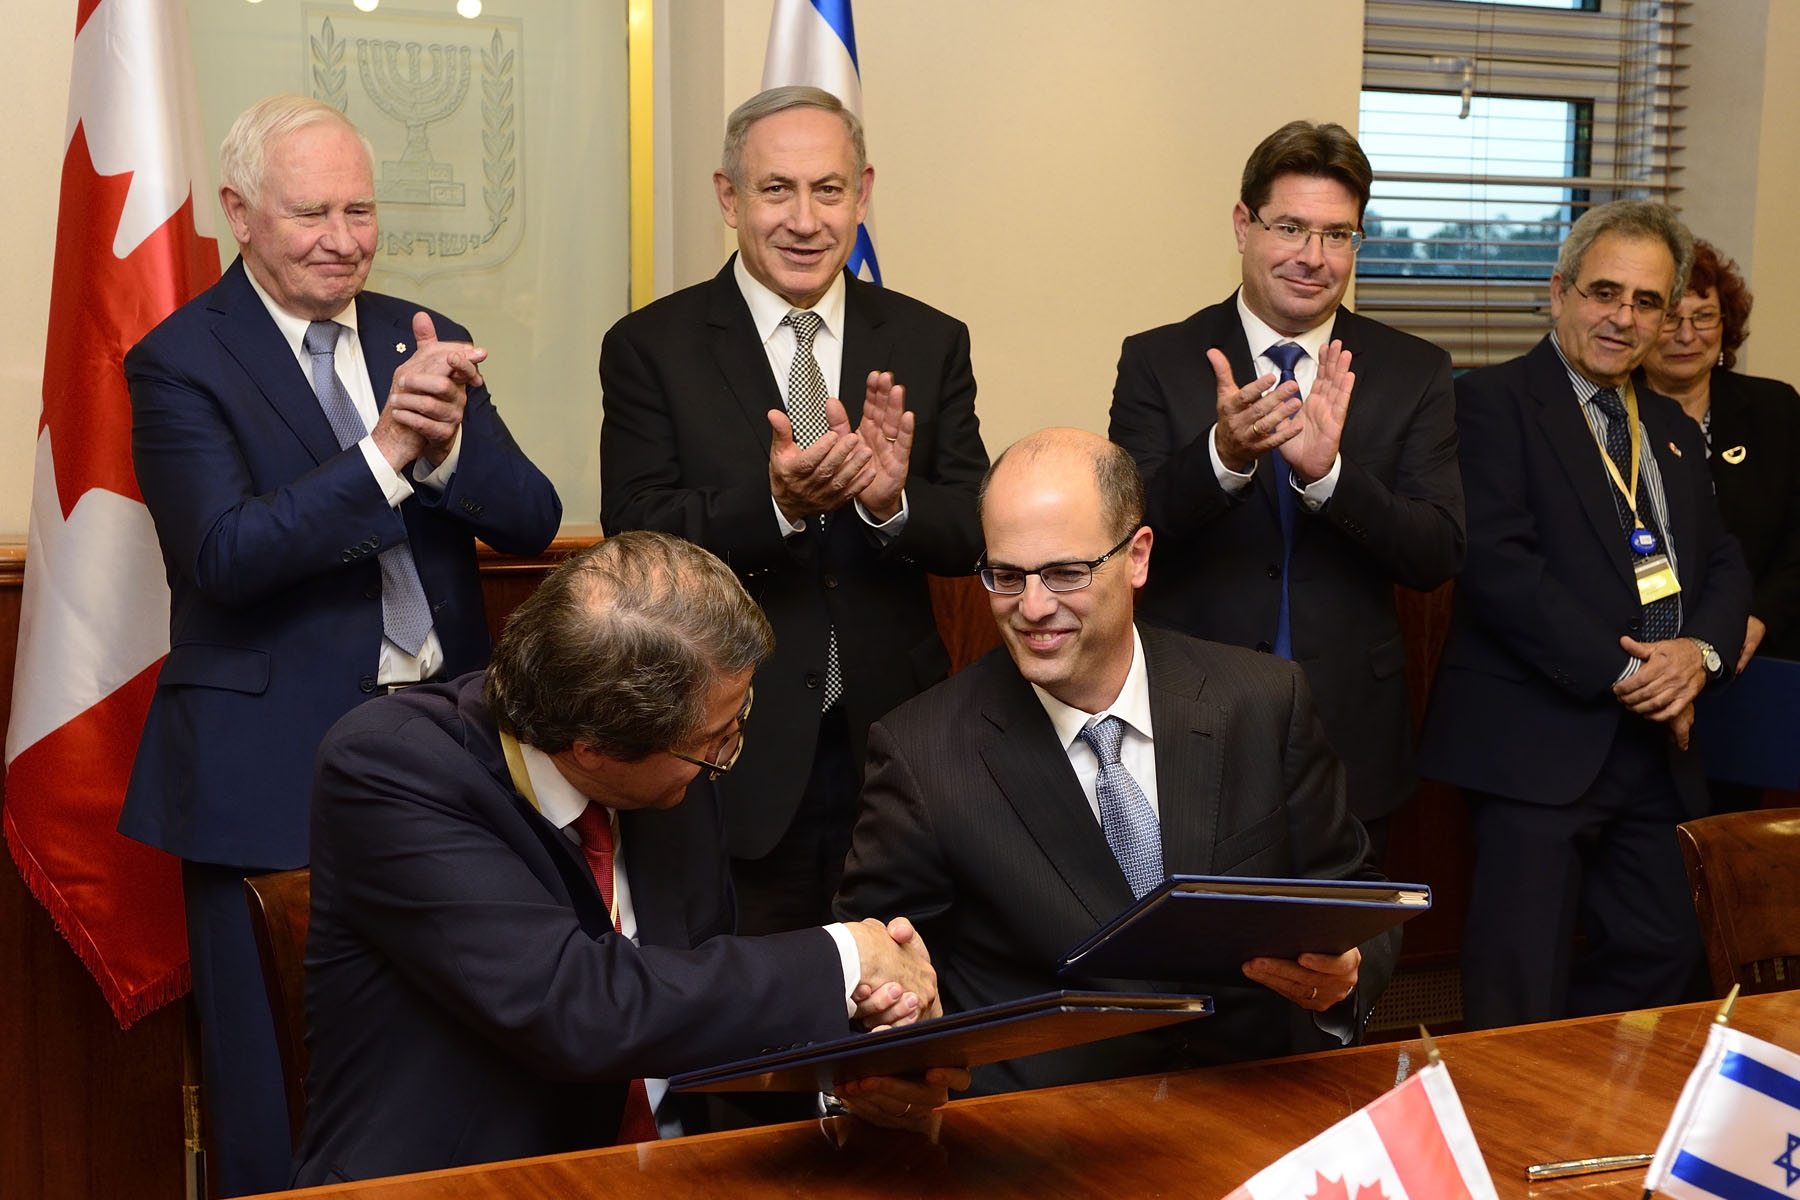 The second agreement was with the Israel's Ministry of Science, Technology and Space (MOST) and establishes an academic research collaboration between Canadian and Israeli universities through the Globalink Research Award program.